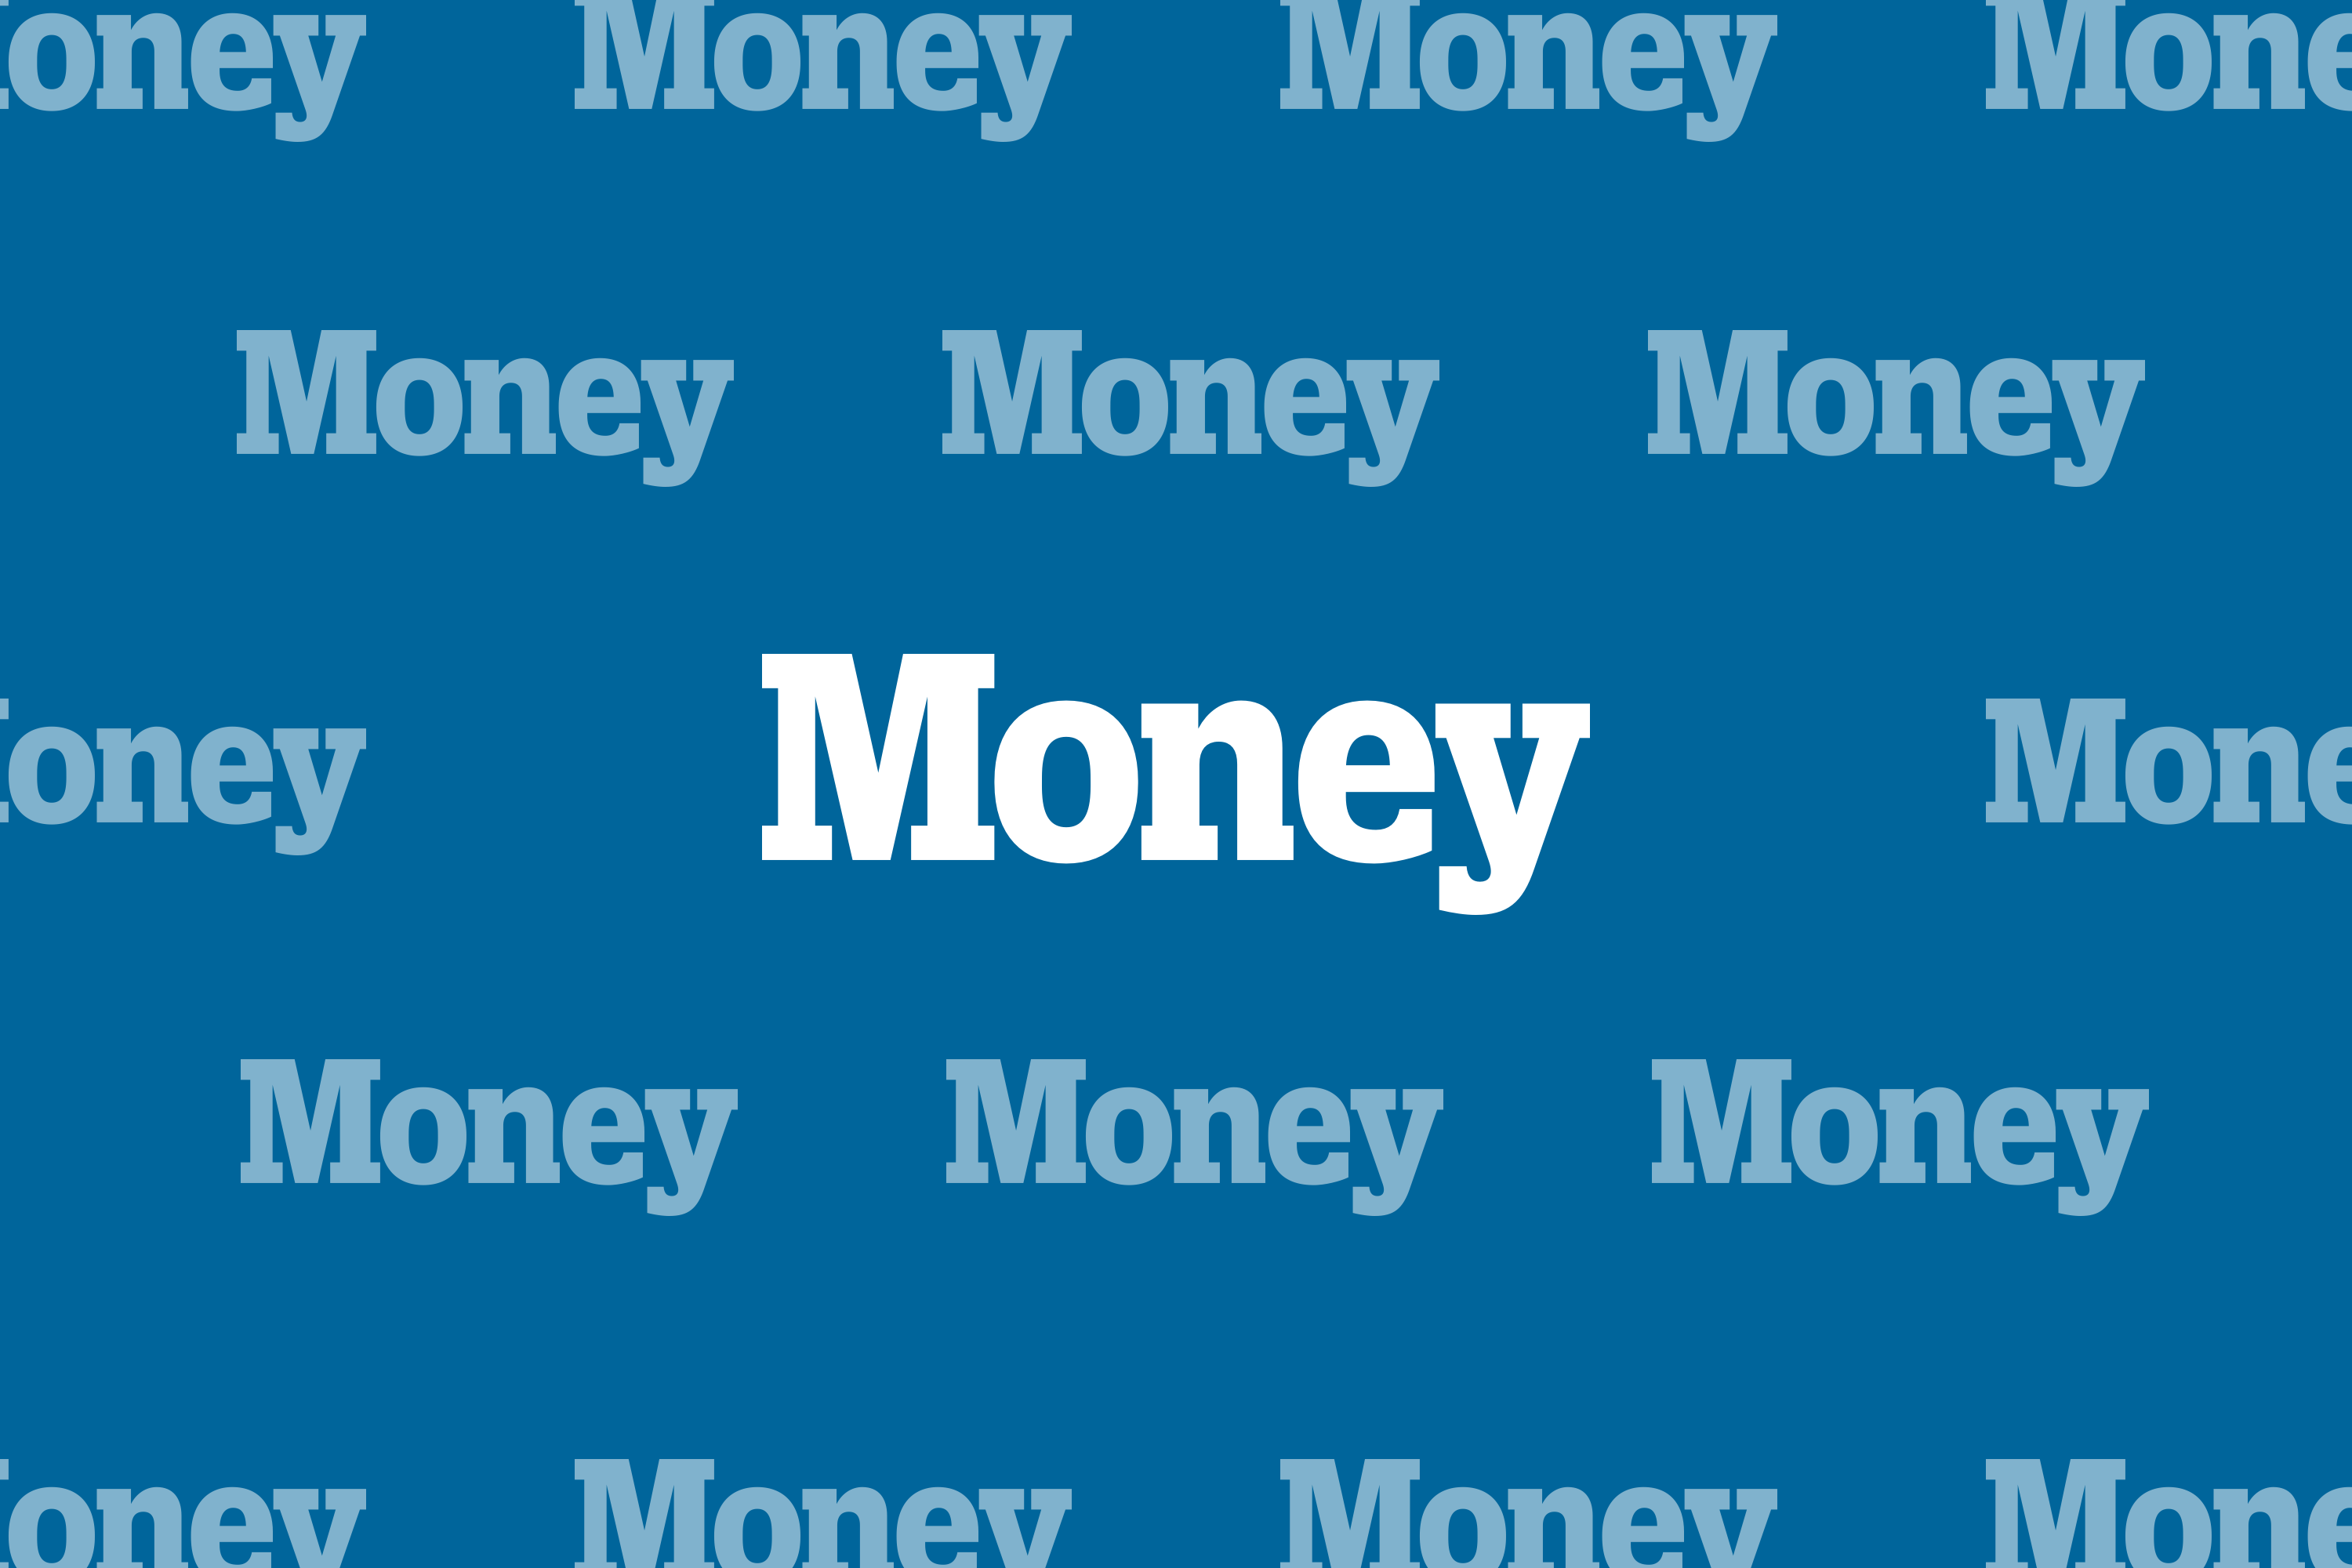 Money Magazine default image